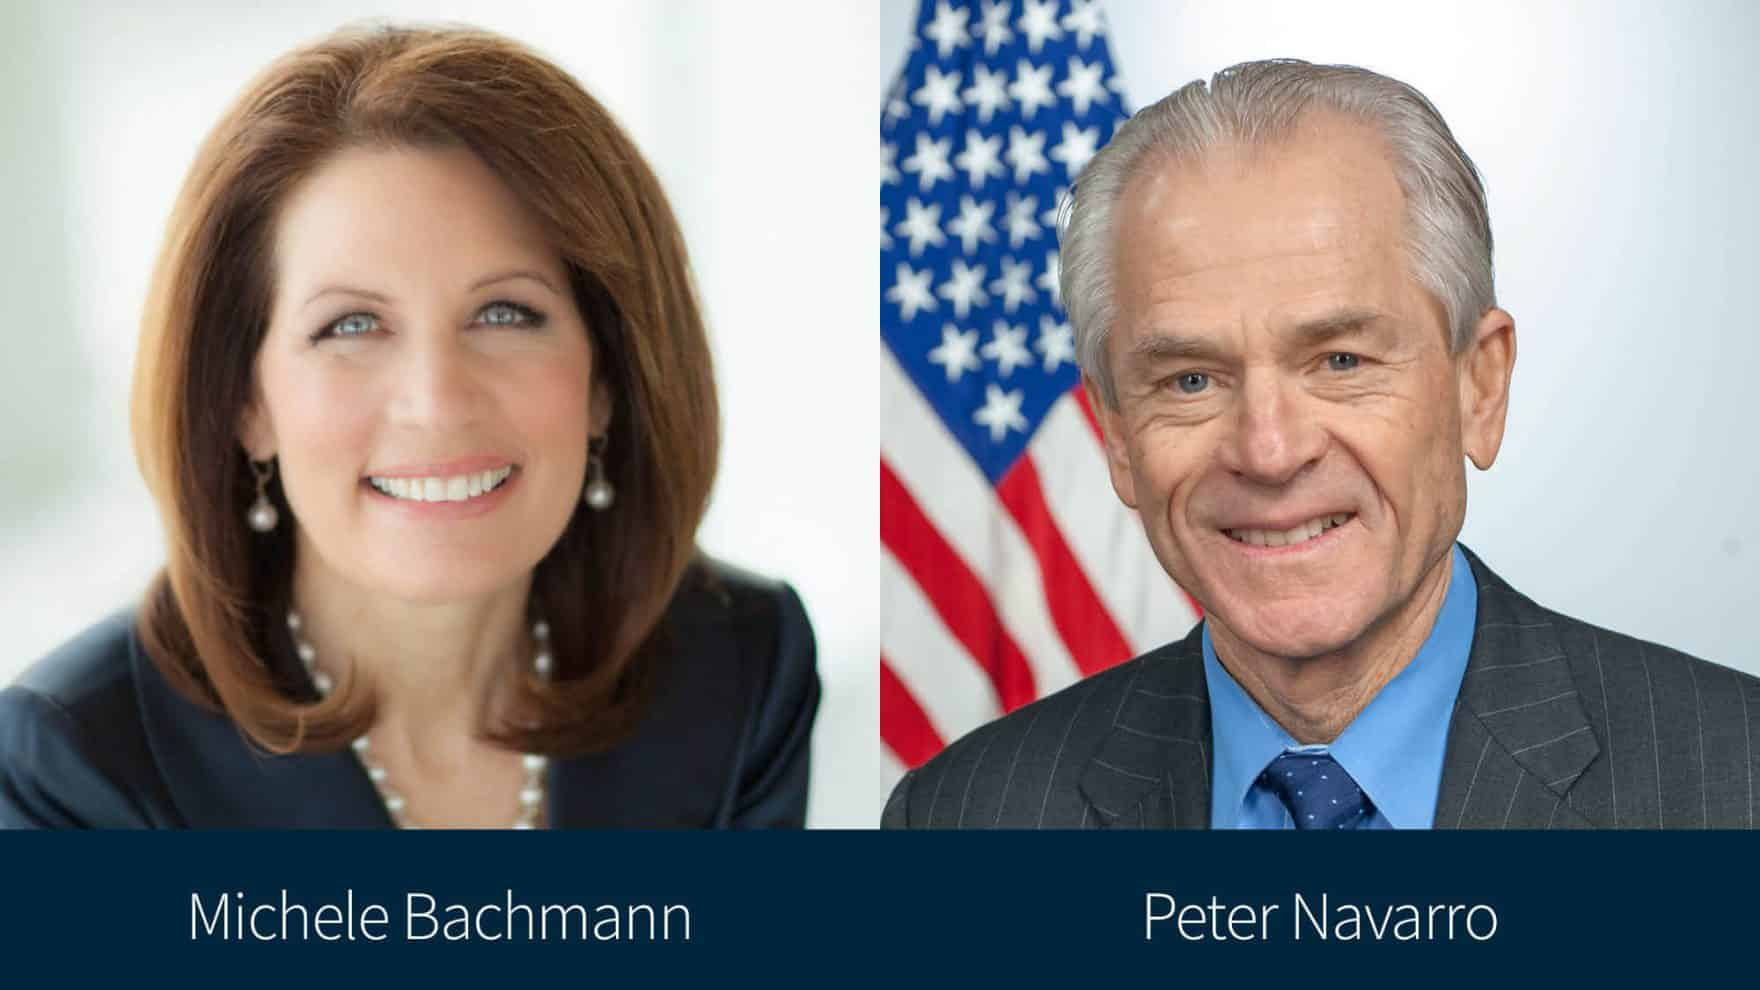 Michele Bachmann and Peter Navarro, the moderator and speaker of Regent University's election integrity online conference.